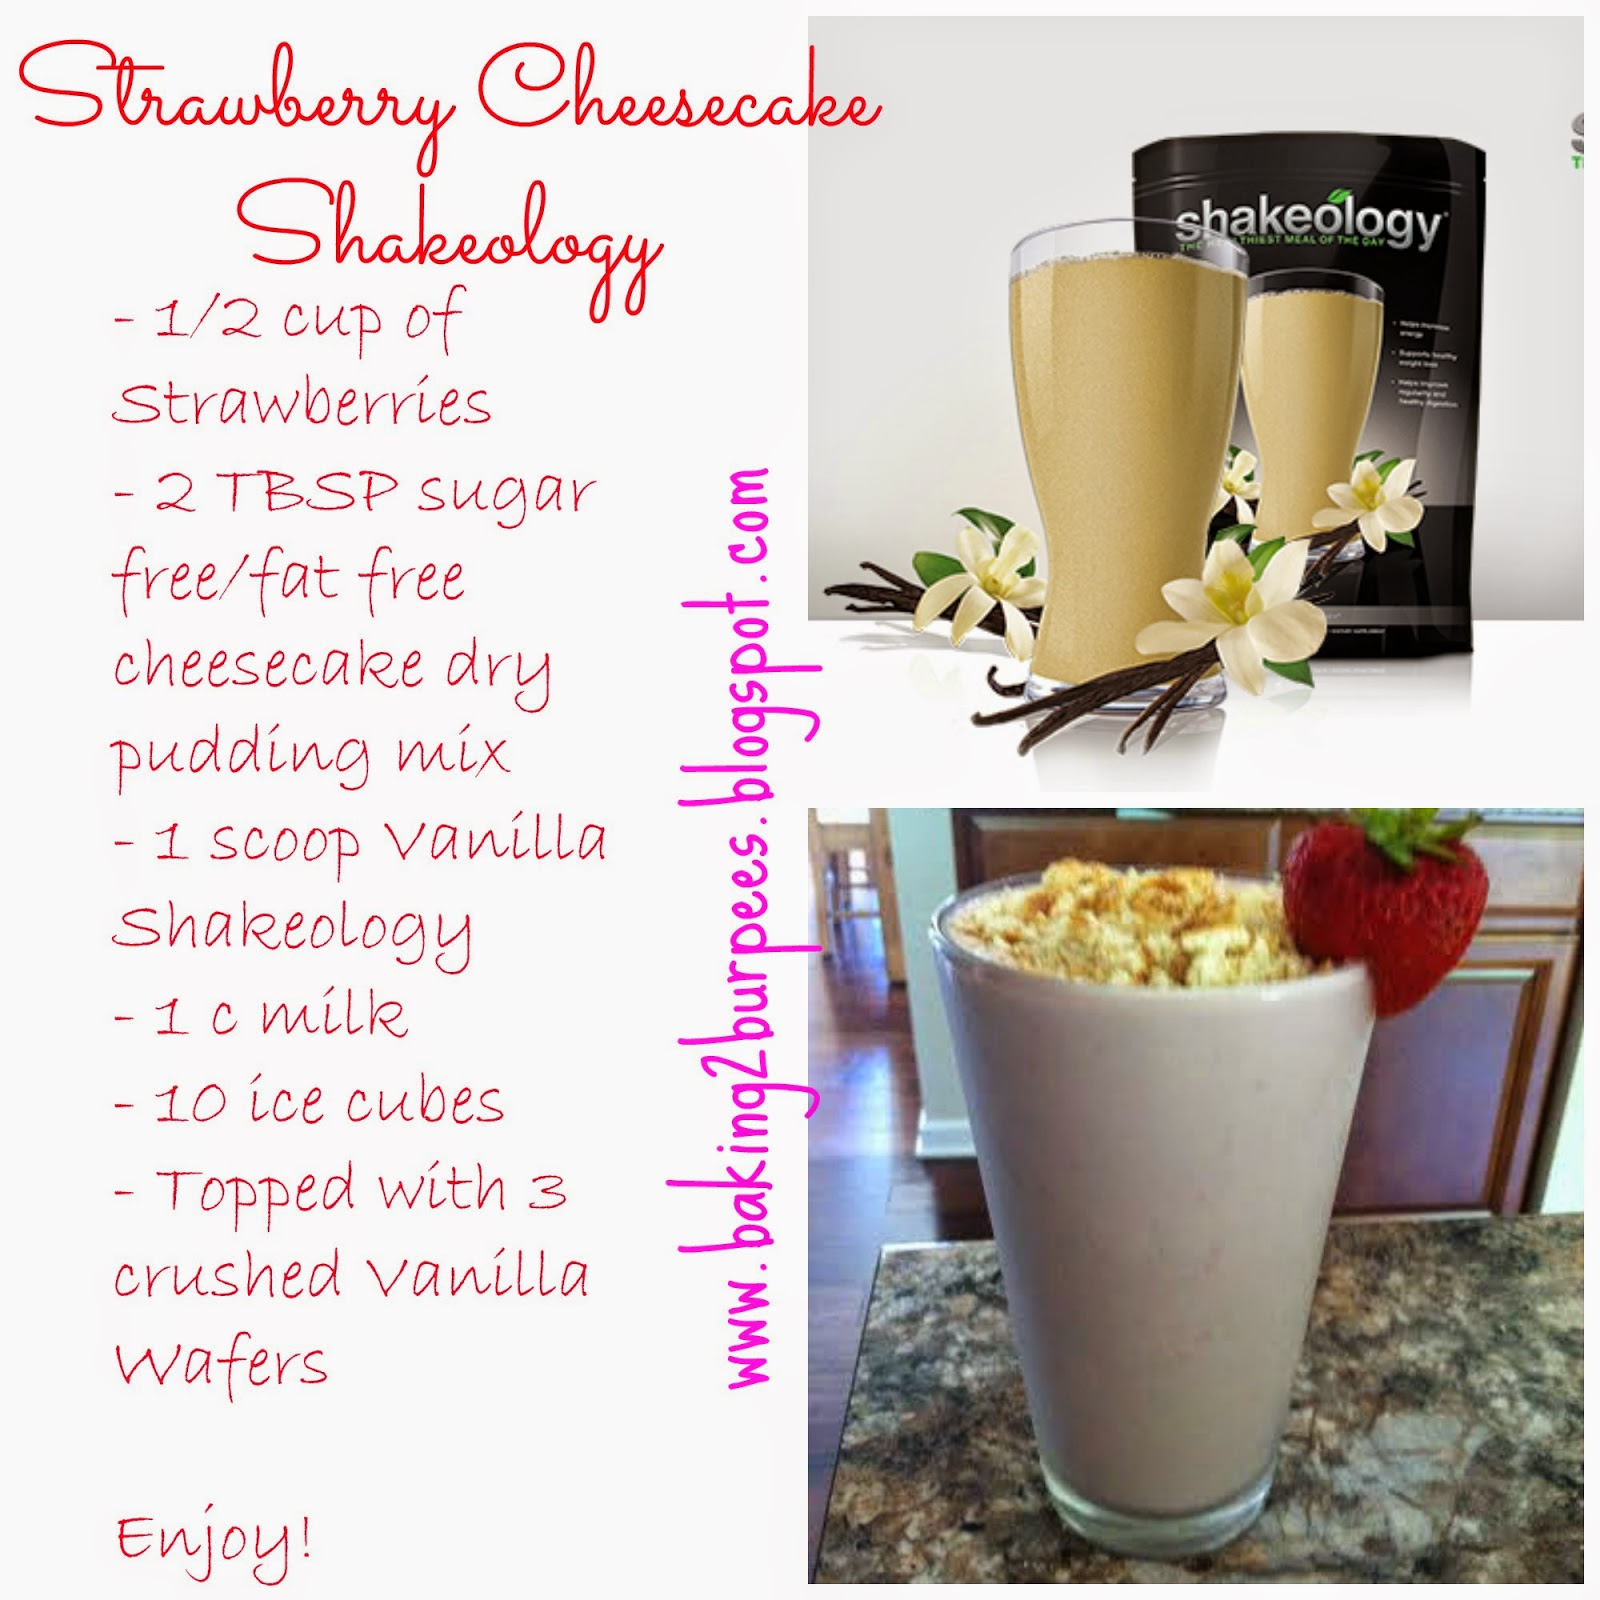 Erin Traill, Strawberry, Cheesecake, Shakeology, Healthy, fit mom, fit family, transformation, weight loss succes story, weight loss, tips, weight watchers